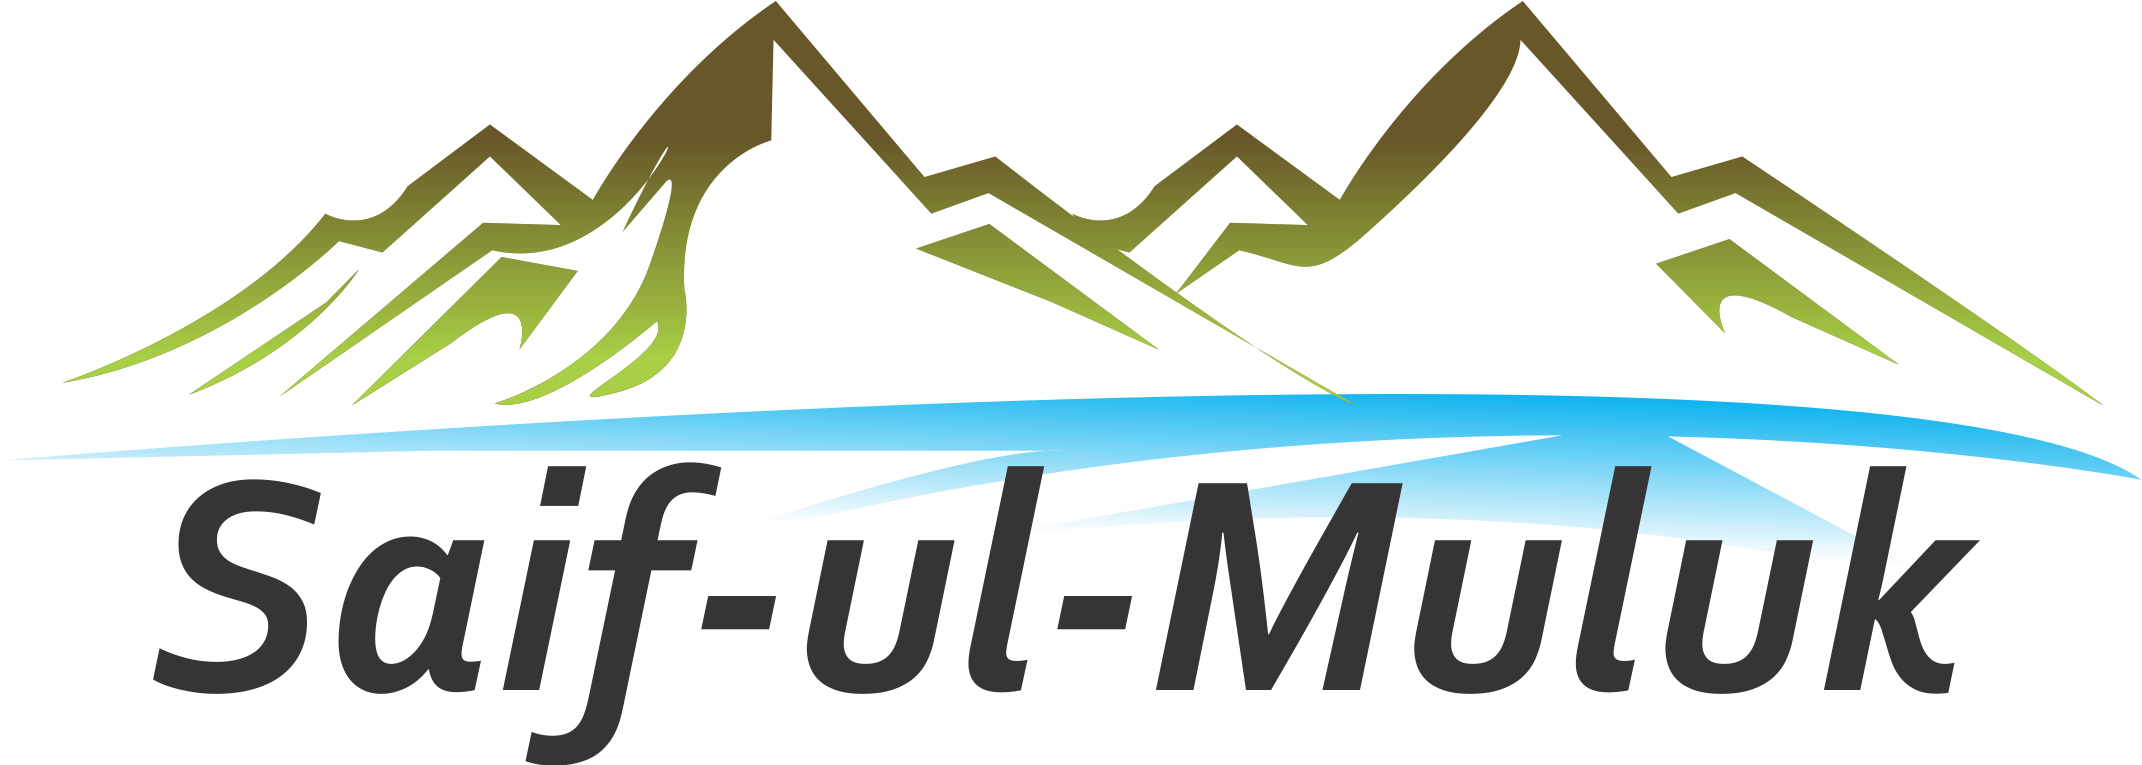 SaifulMuluk Tour and Travel Company | Saif-Ul-Muluk | Vacation homes - SaifulMuluk Tour and Travel Company | Saif-Ul-Muluk